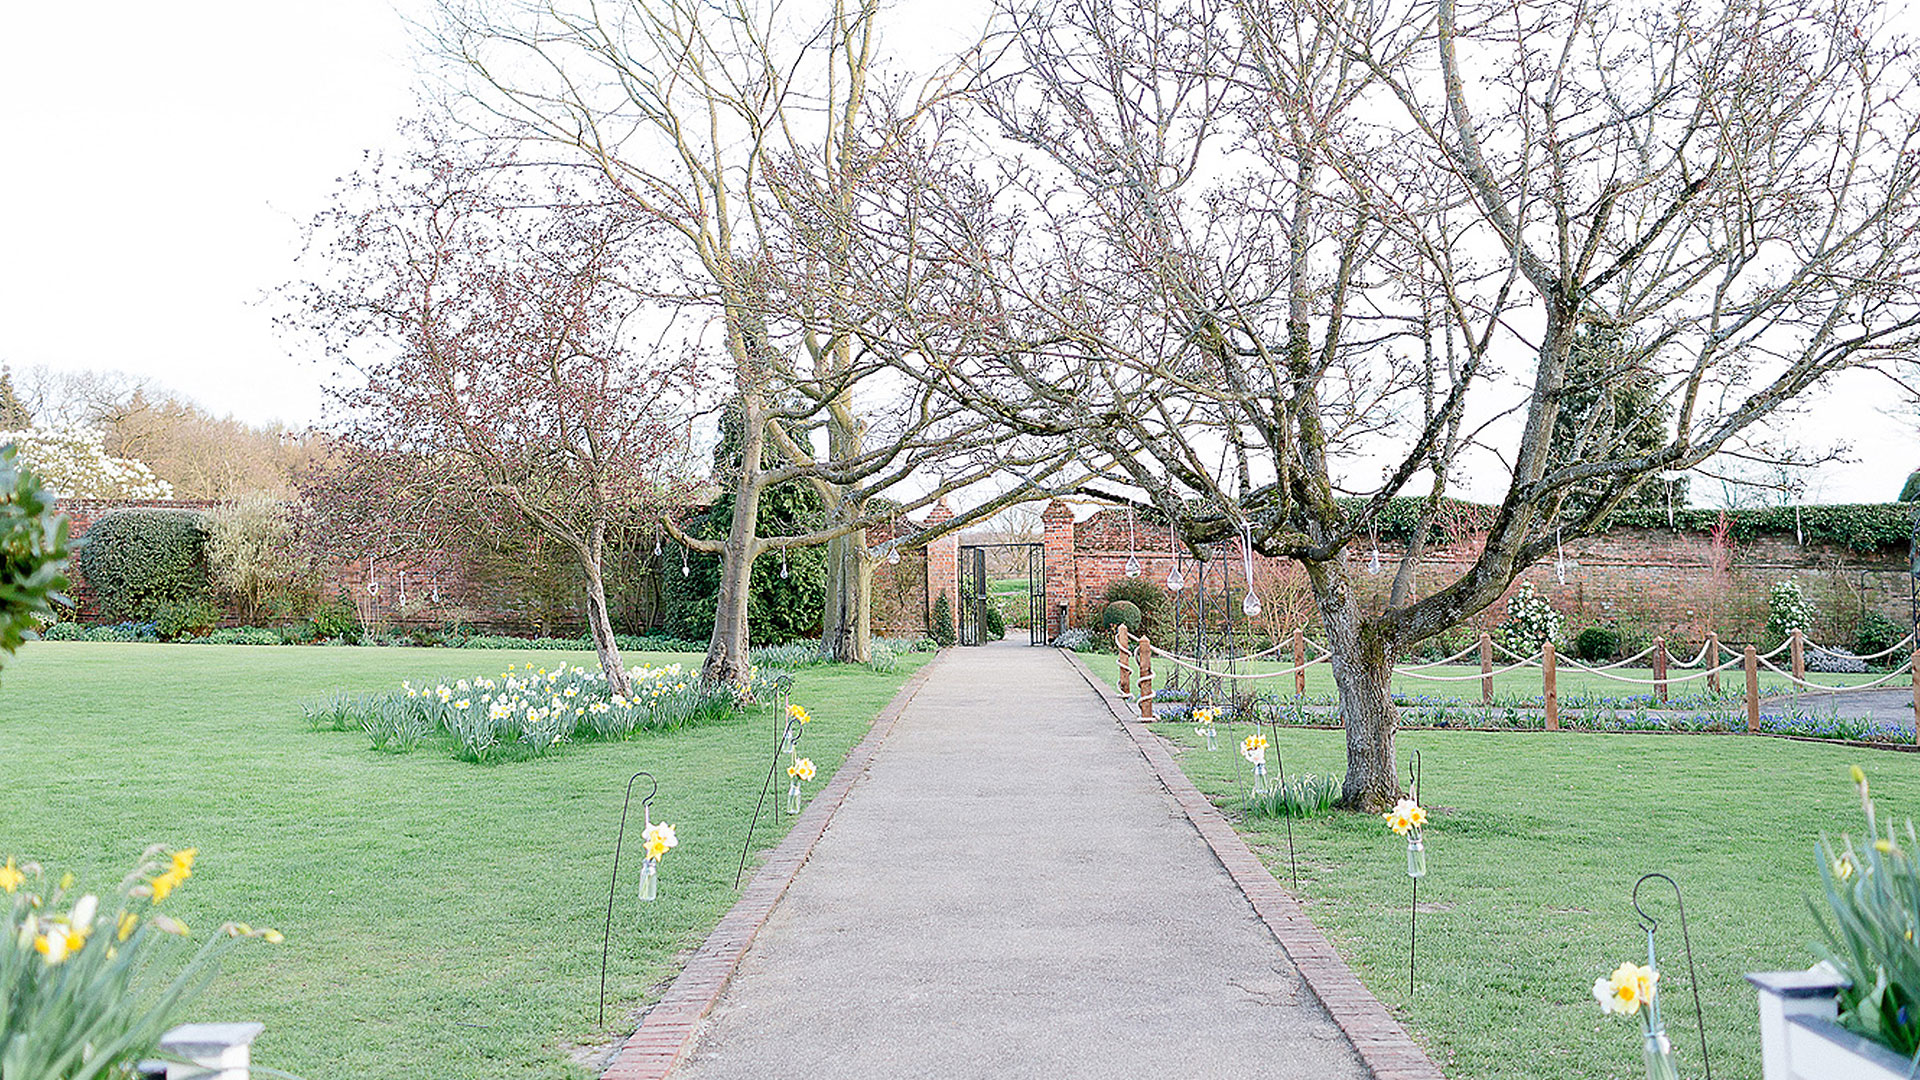 In spring pretty daffodils bloom in the Walled Garden making it perfect for wedding pictures - spring wedding